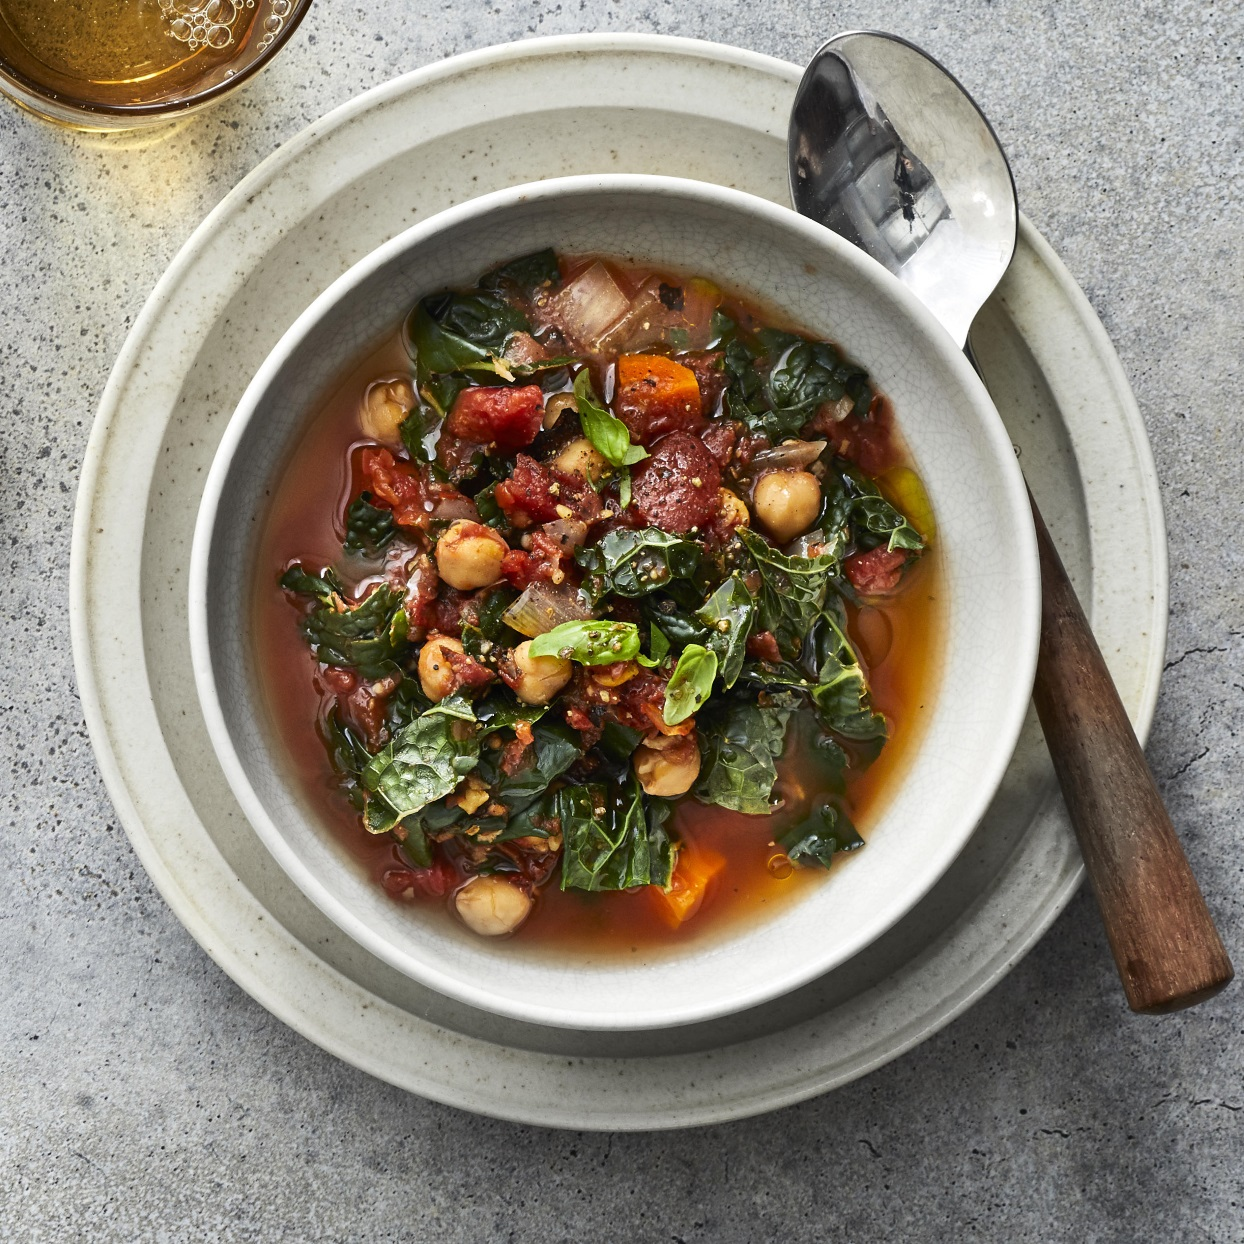 This Mediterranean stew is a healthy dinner chock-full of vegetables and hearty chickpeas. A drizzle of olive oil to finish carries the flavors of this easy vegan crock-pot stew. Swap out the chickpeas for white beans for a different twist, or try collards or spinach in place of the kale. Any way you vary it, this stew is sure to go into heavy rotation when you are looking for healthy crock-pot recipes.